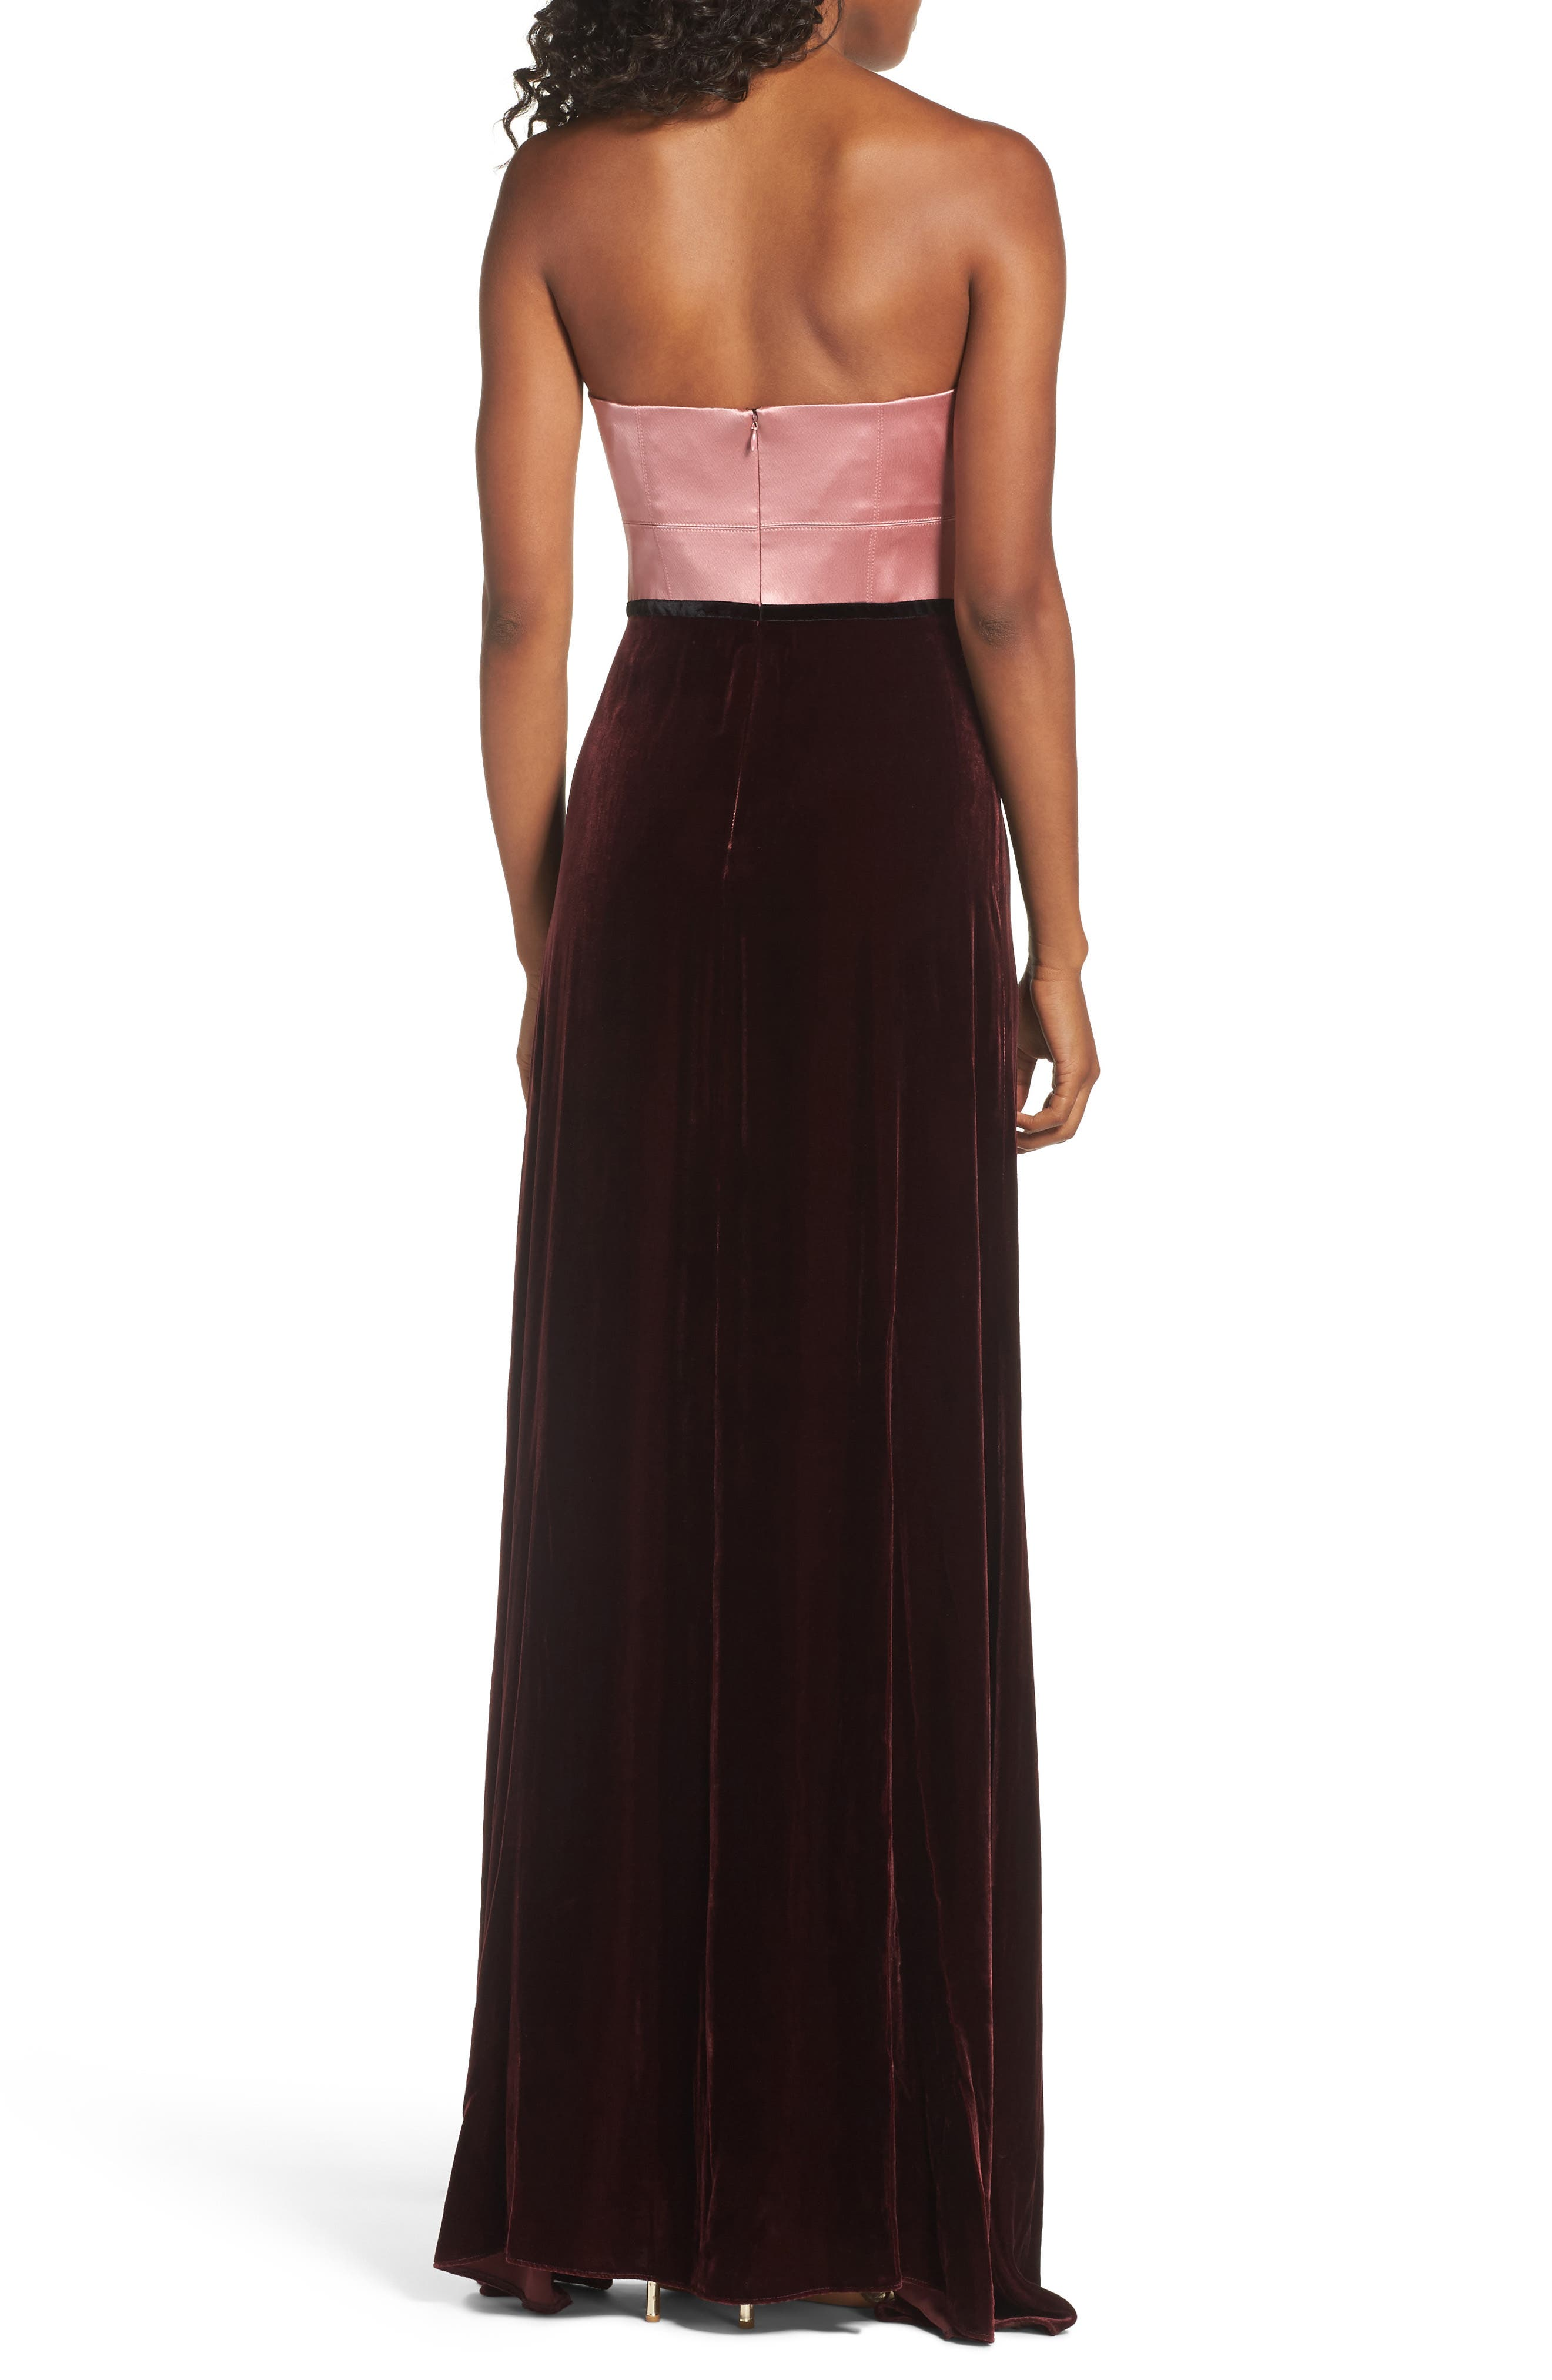 Strapless Satin & Velvet Gown,                             Alternate thumbnail 2, color,                             Prim Rose/ Raisin/ Black